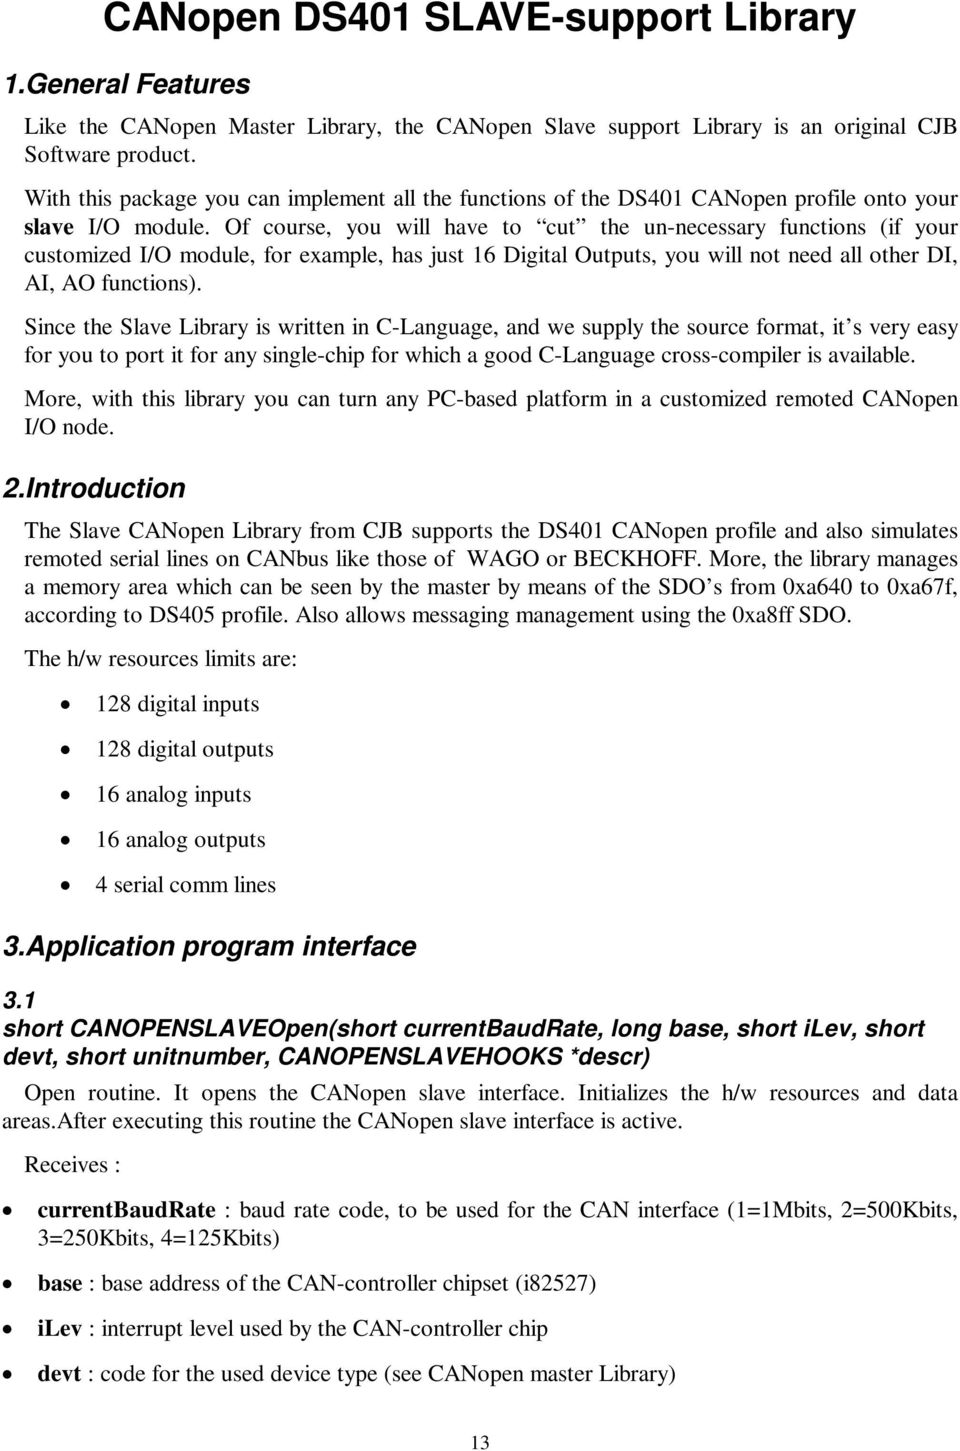 CANopen Library DS401 & DS402 - PDF